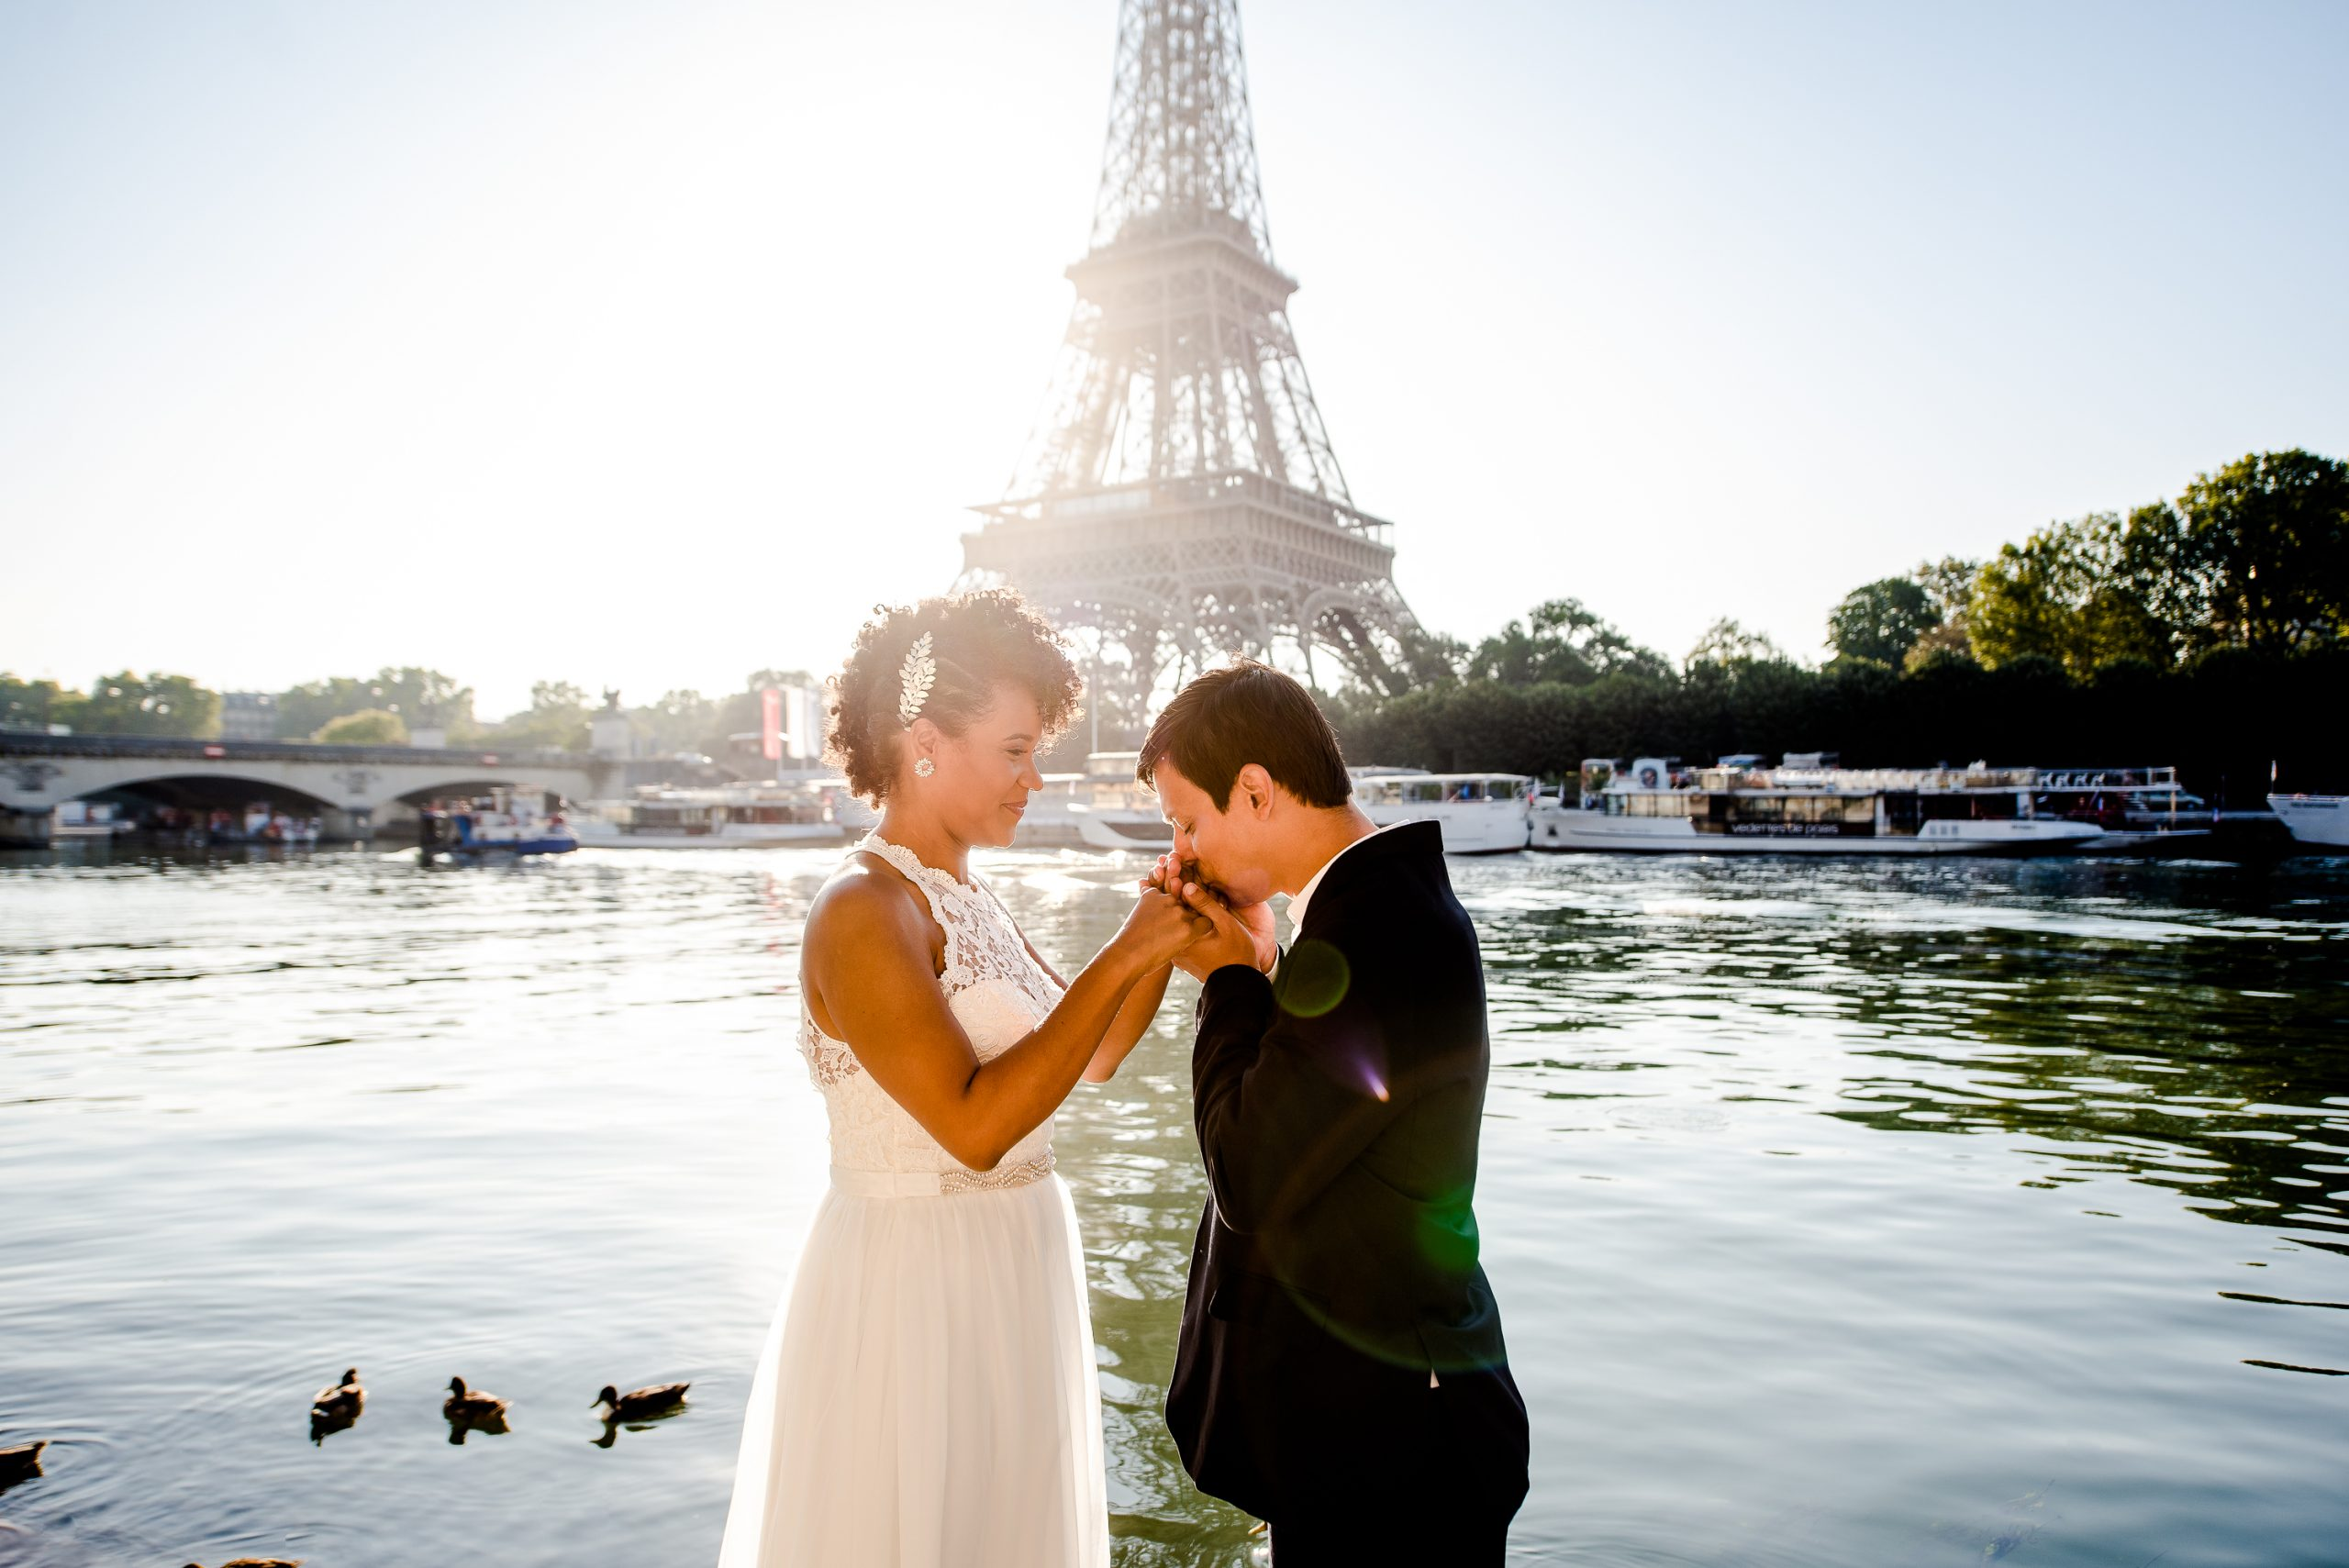 ana-rita-rodrigues-photographe-mariage-37-scaled